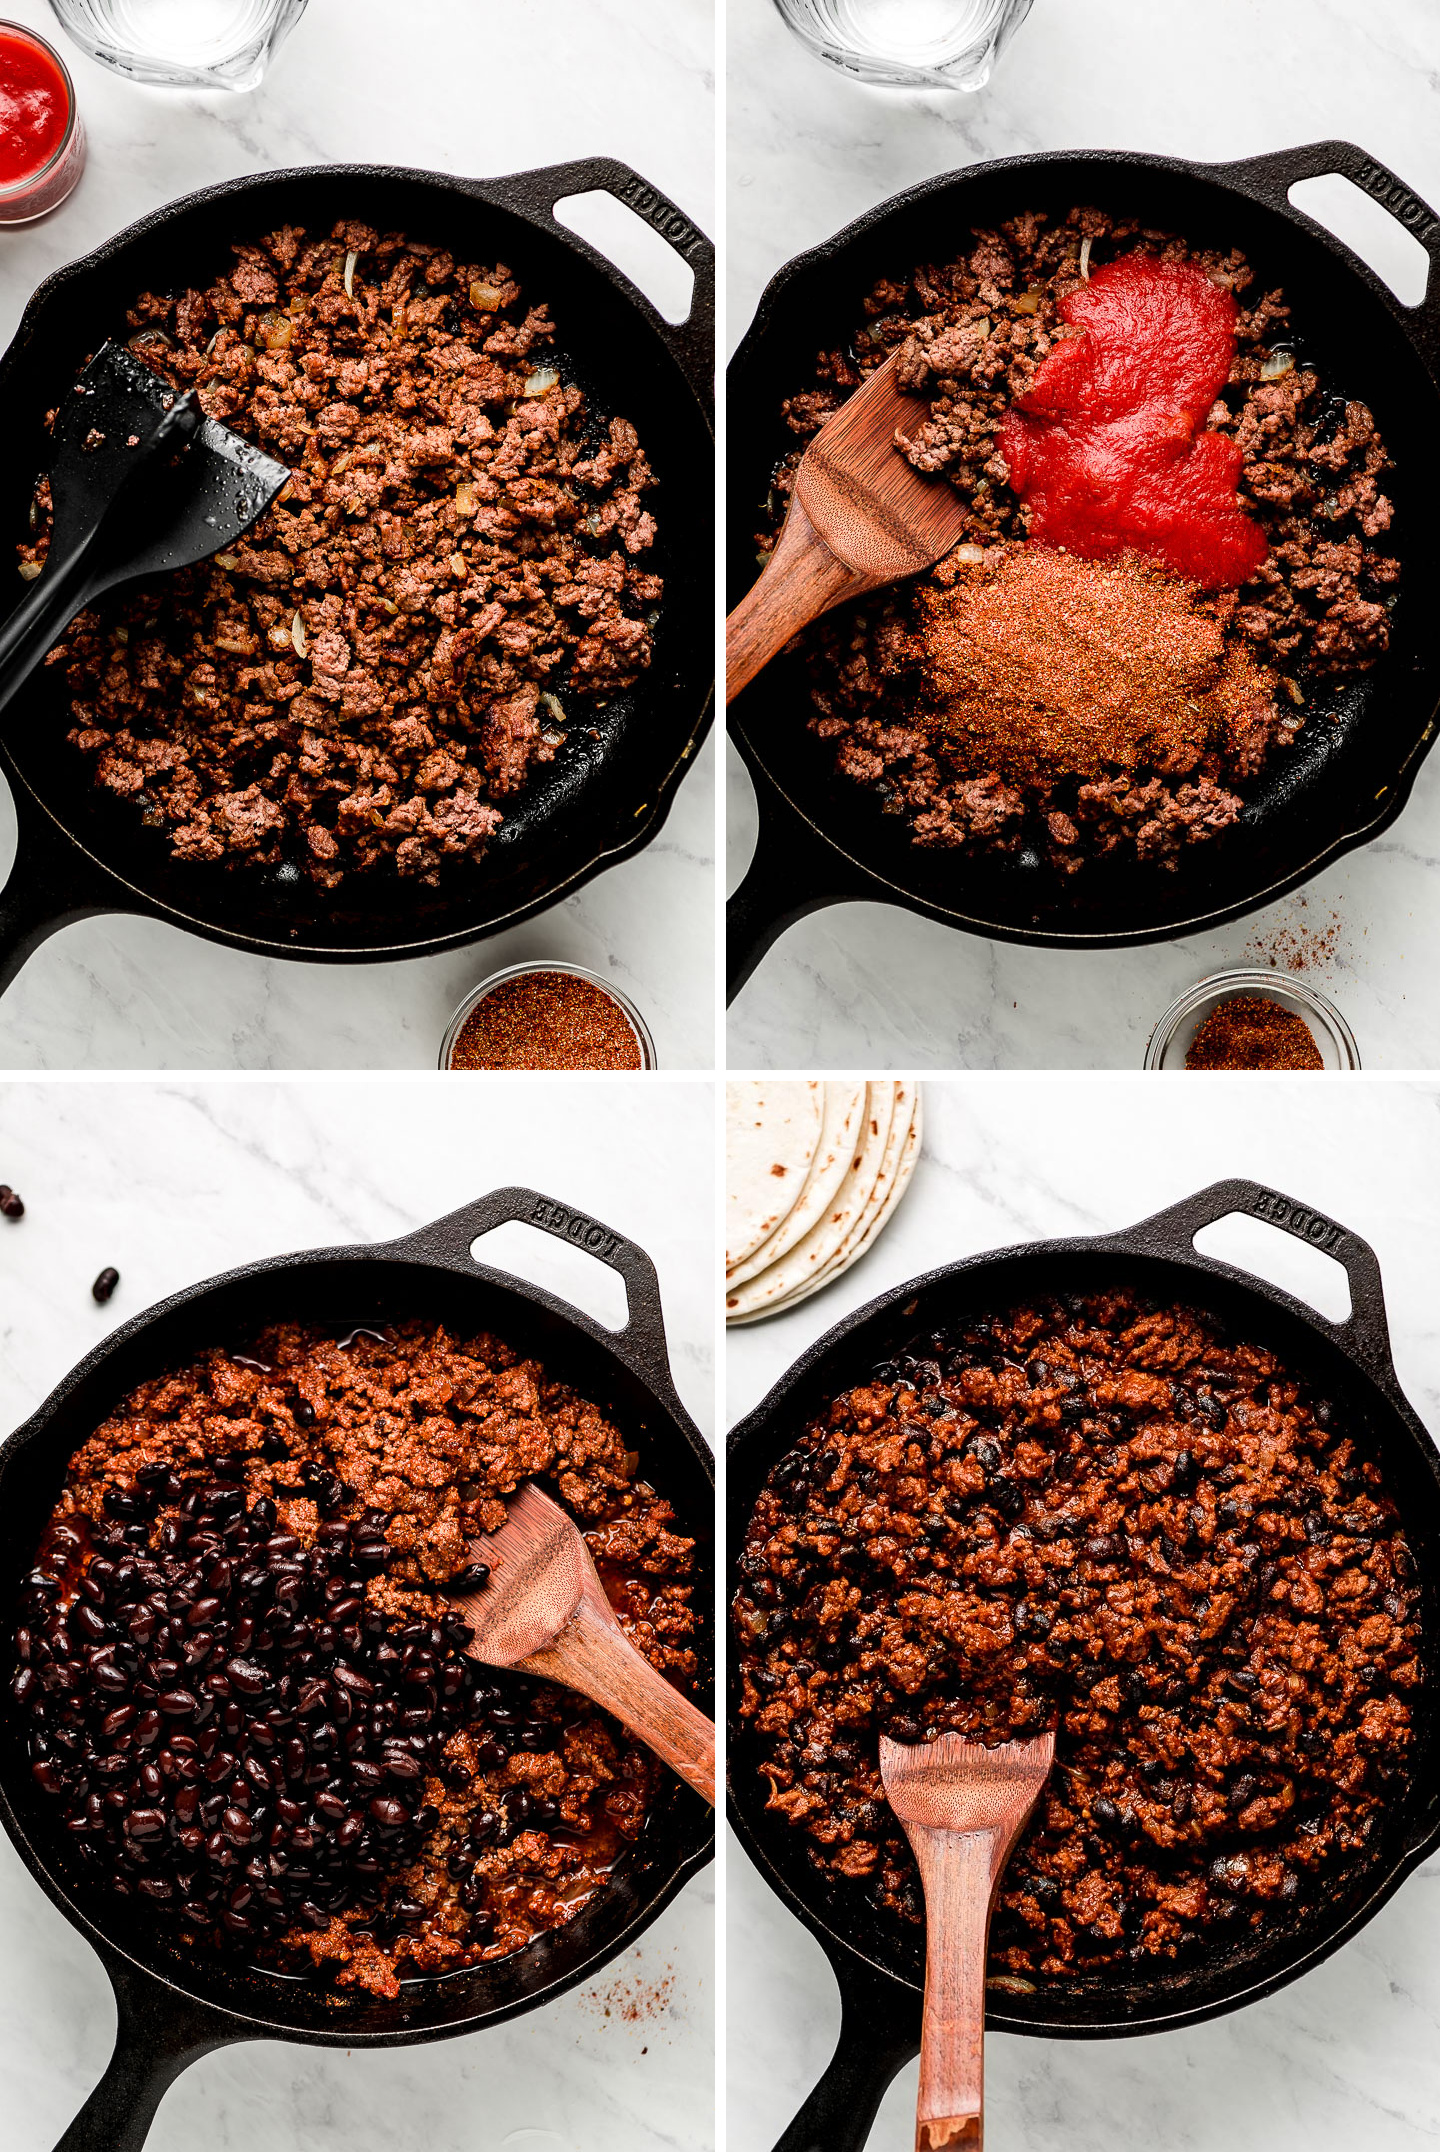 Crumbled ground beef in a cast iron skillet; tomato sauce and seasoning added on top; beans added and mixed into the meat.